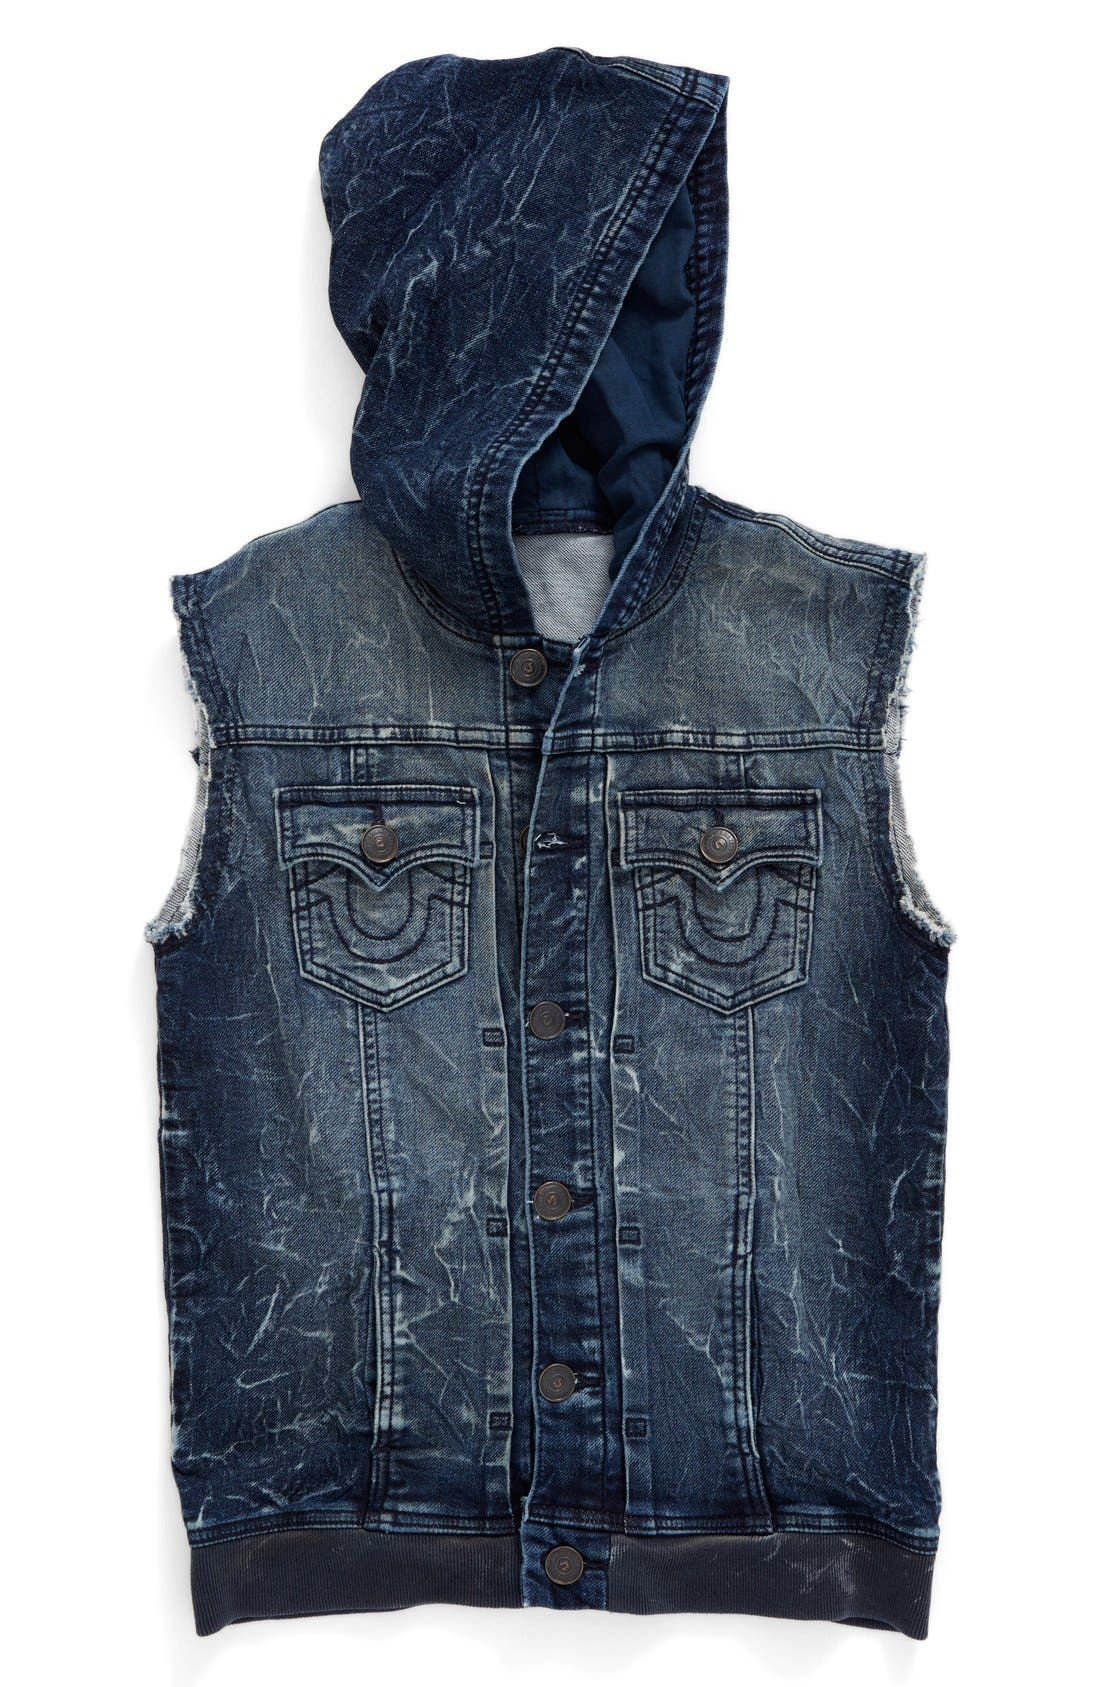 Main Image - True Religion Brand Jeans 'Dylan' French Terry Hooded Vest (Toddler Boys, Little Boys & Big Boys)